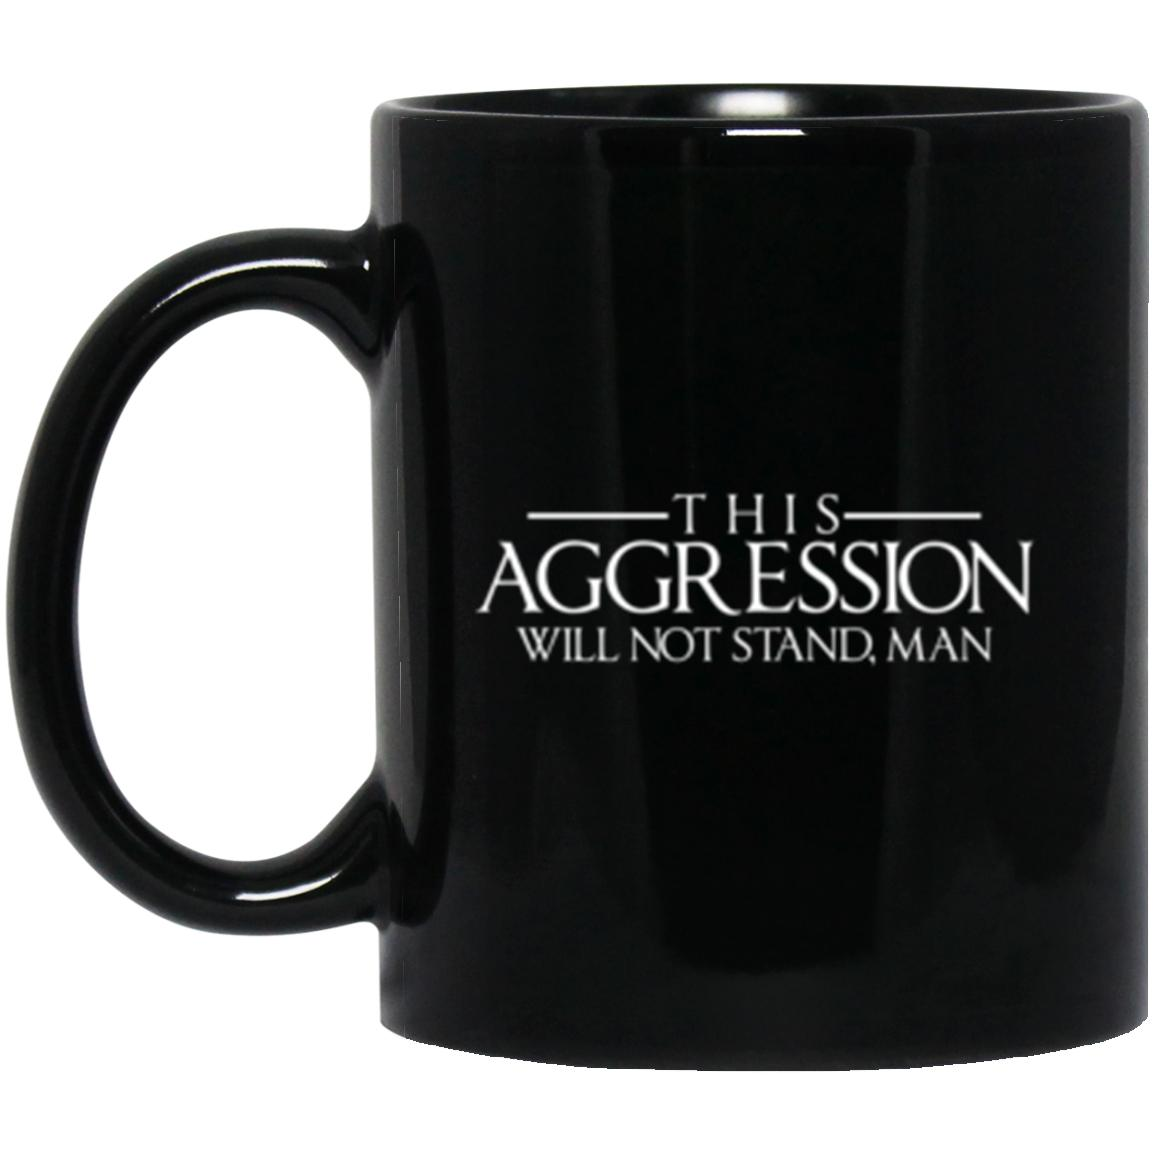 Drinkware - Aggression Text Mug 11oz (2-sided)